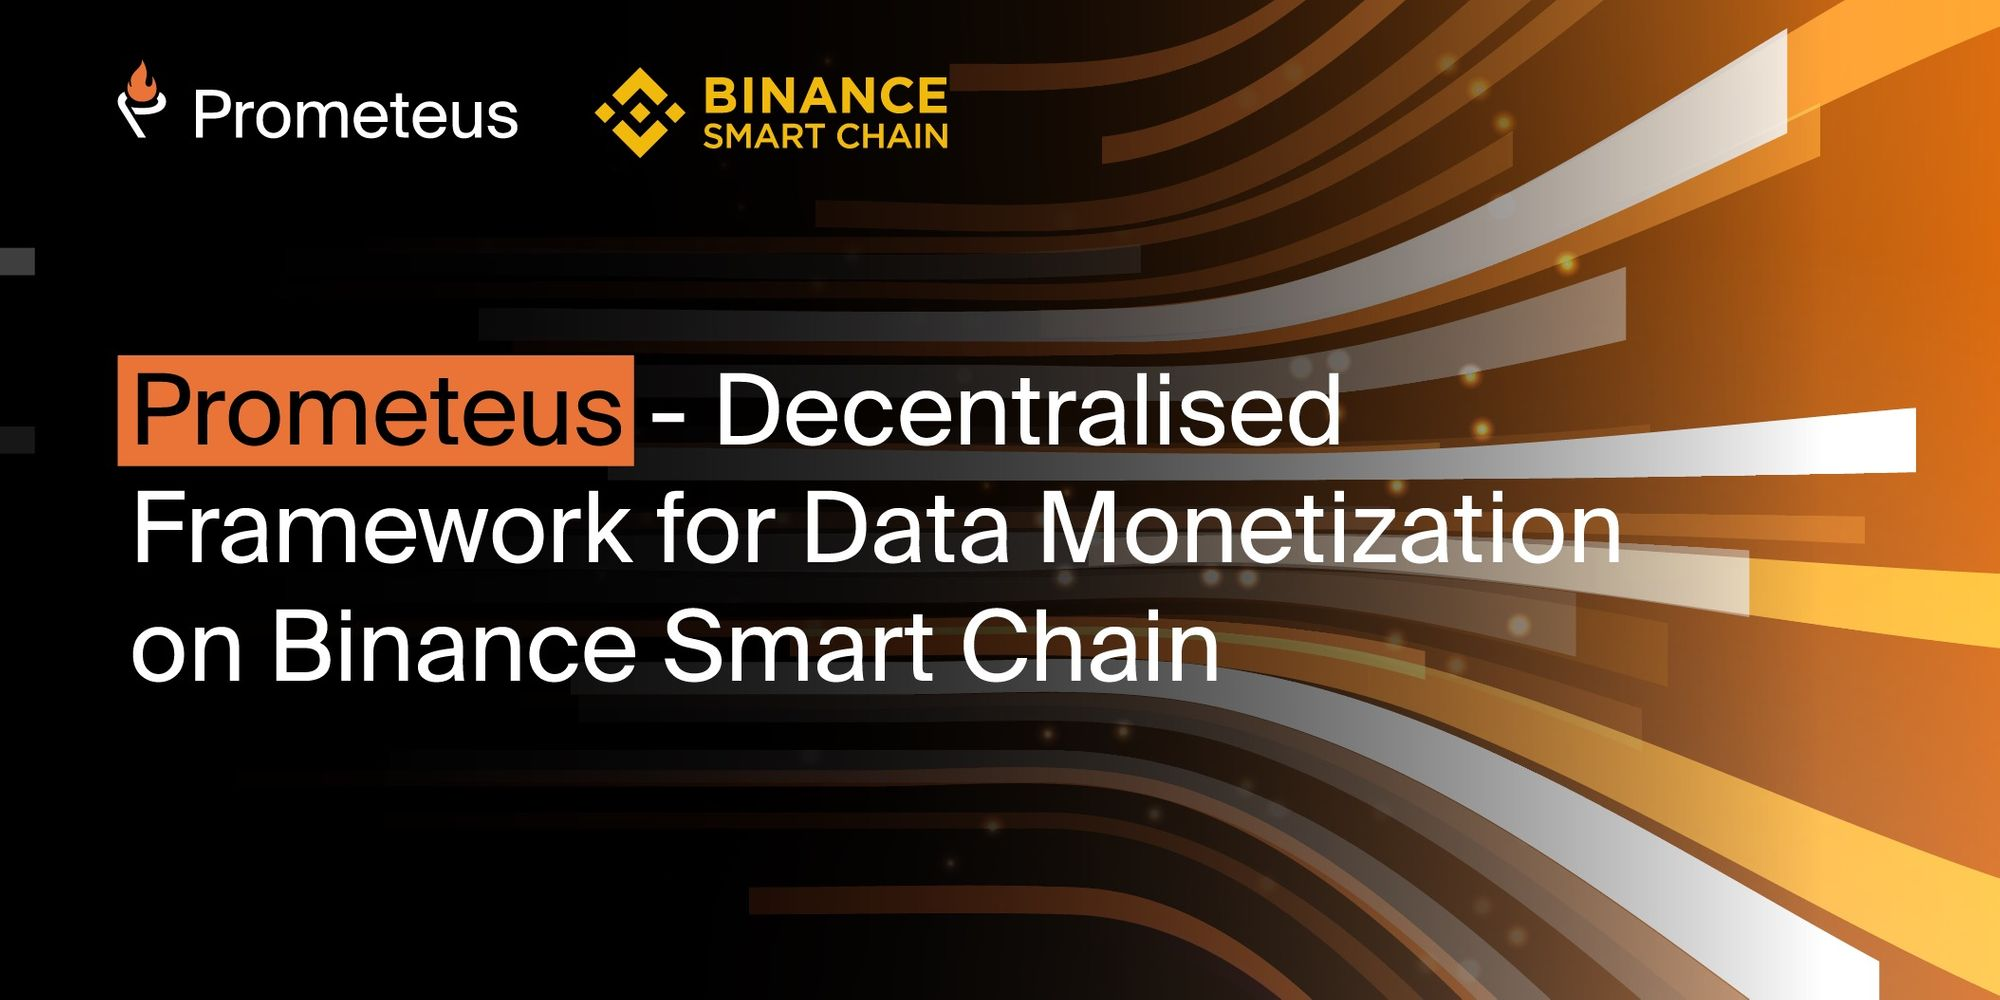 Prometeus - Decentralised Framework for Data Monetization on Binance Smart Chain